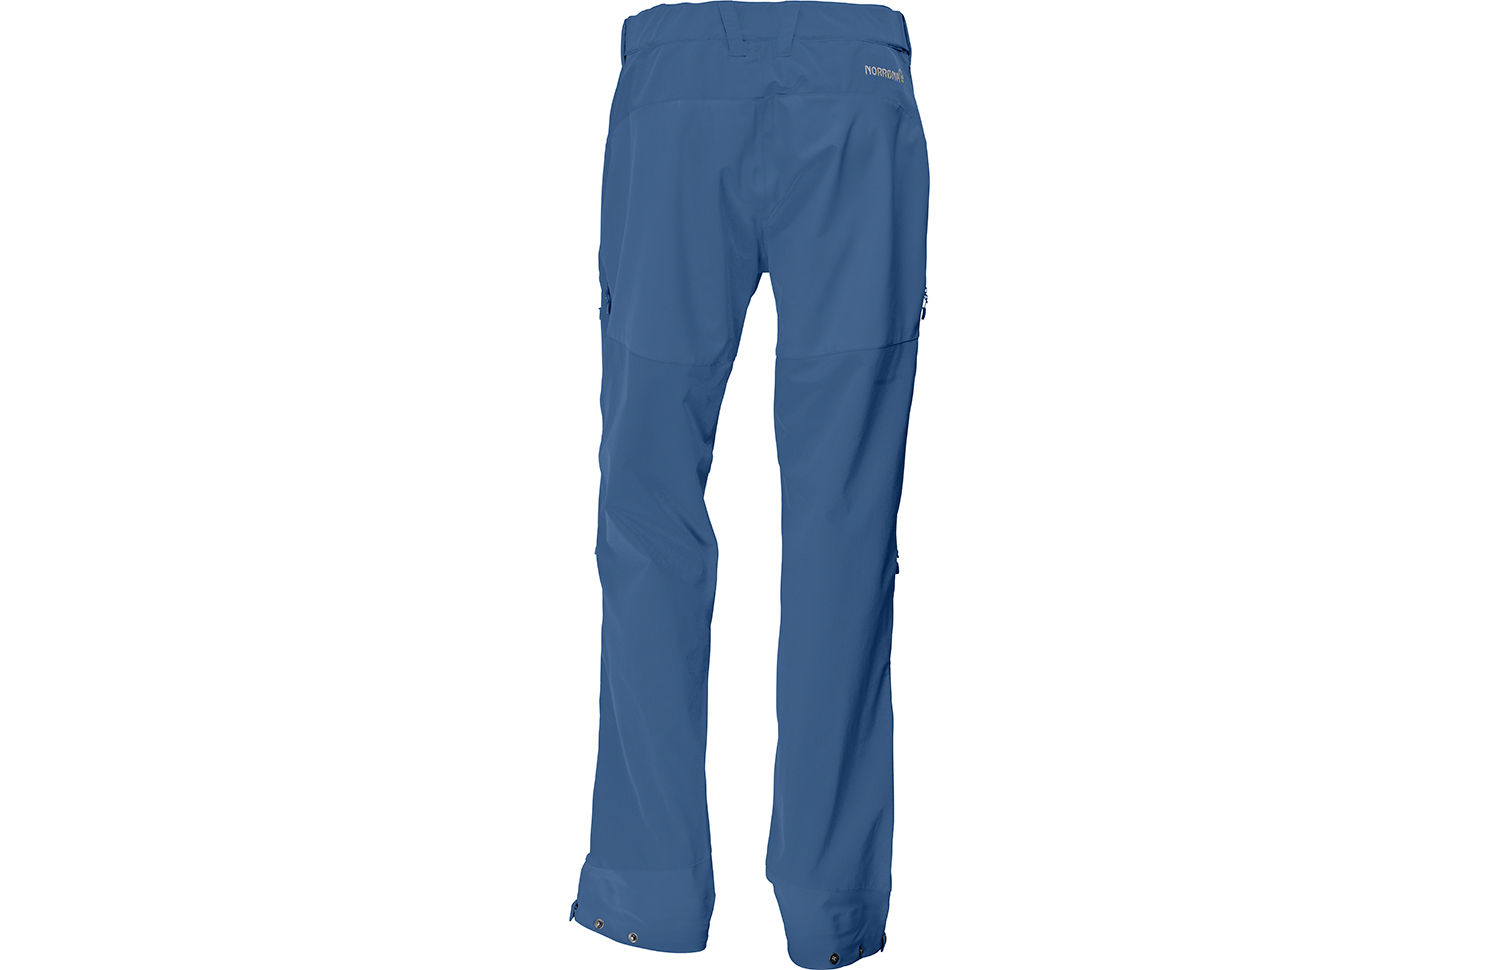 Norrona windstopper pants for men - Falketind